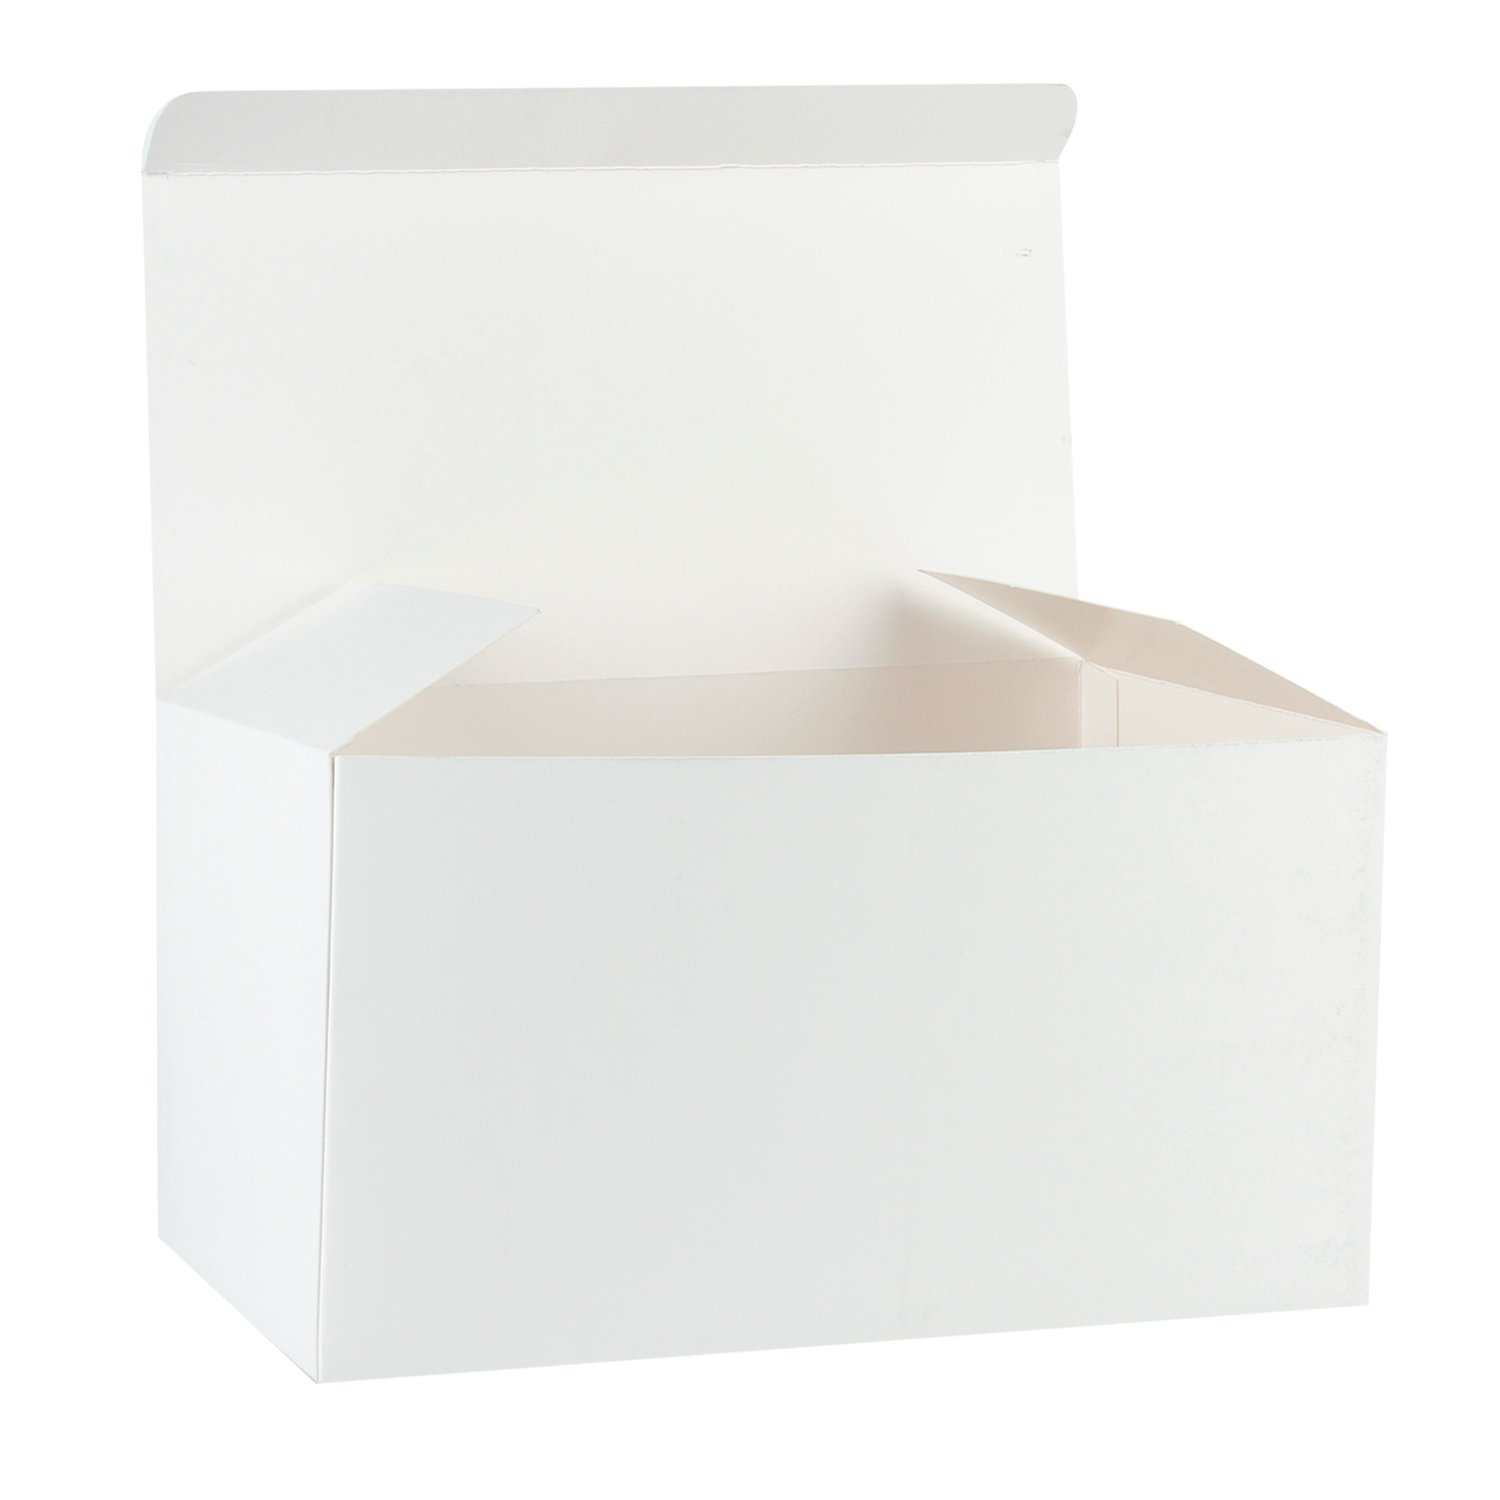 Ruspepa Recycled Cardboard Gift Boxes Large Decorative Box With Lids For Christmas Birthdays Holidays Weddings 12 X6 X6 10 Pack White